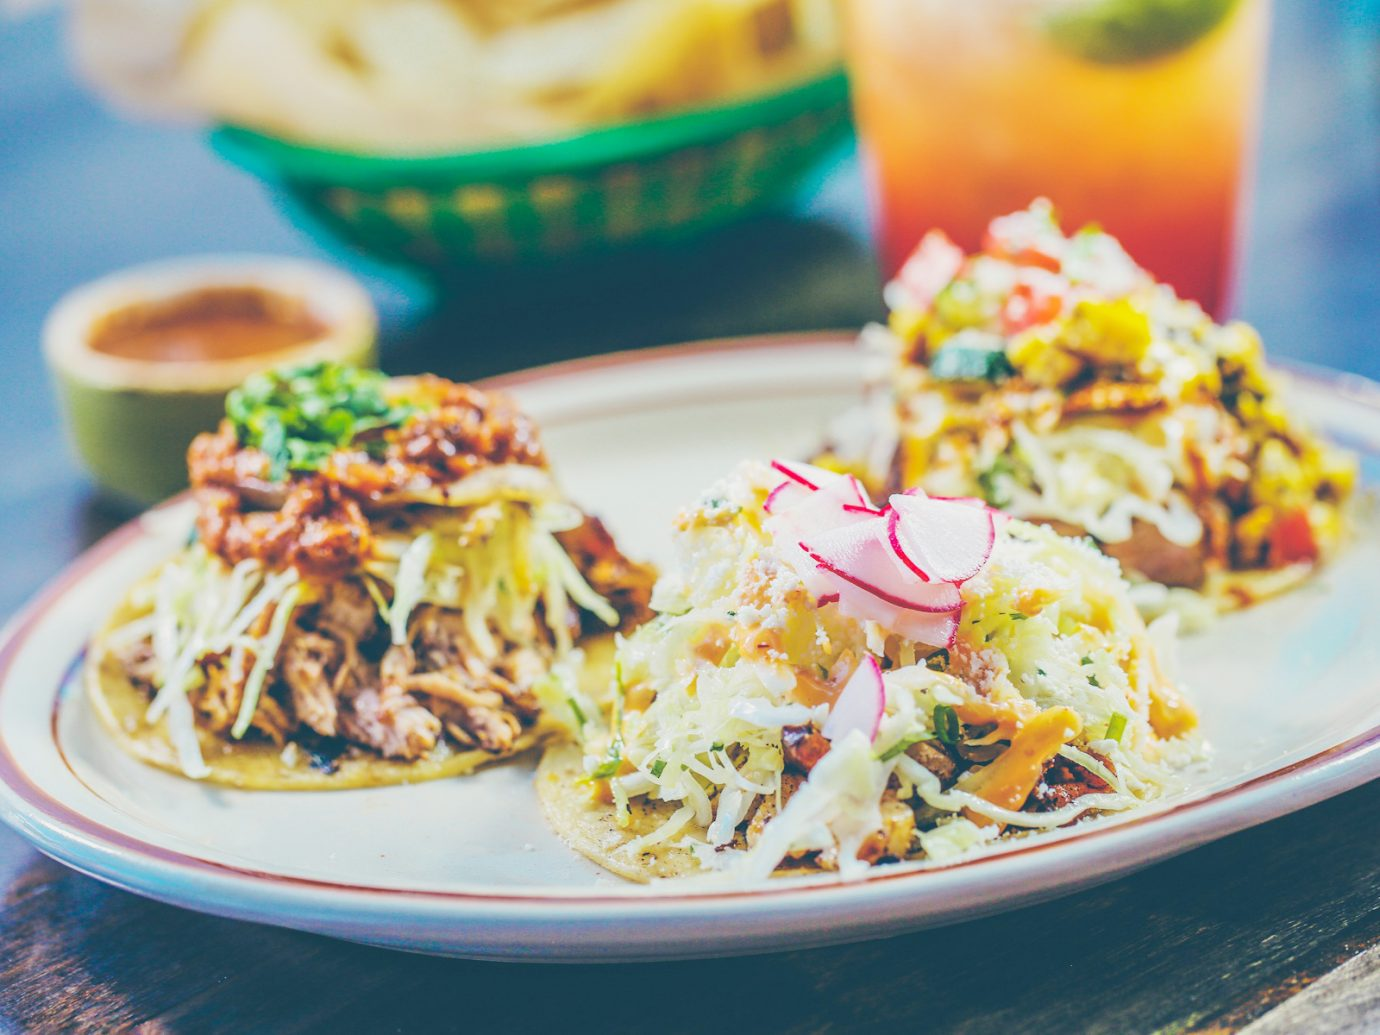 Plate of tacos from Los Chingones in Denver Colorado